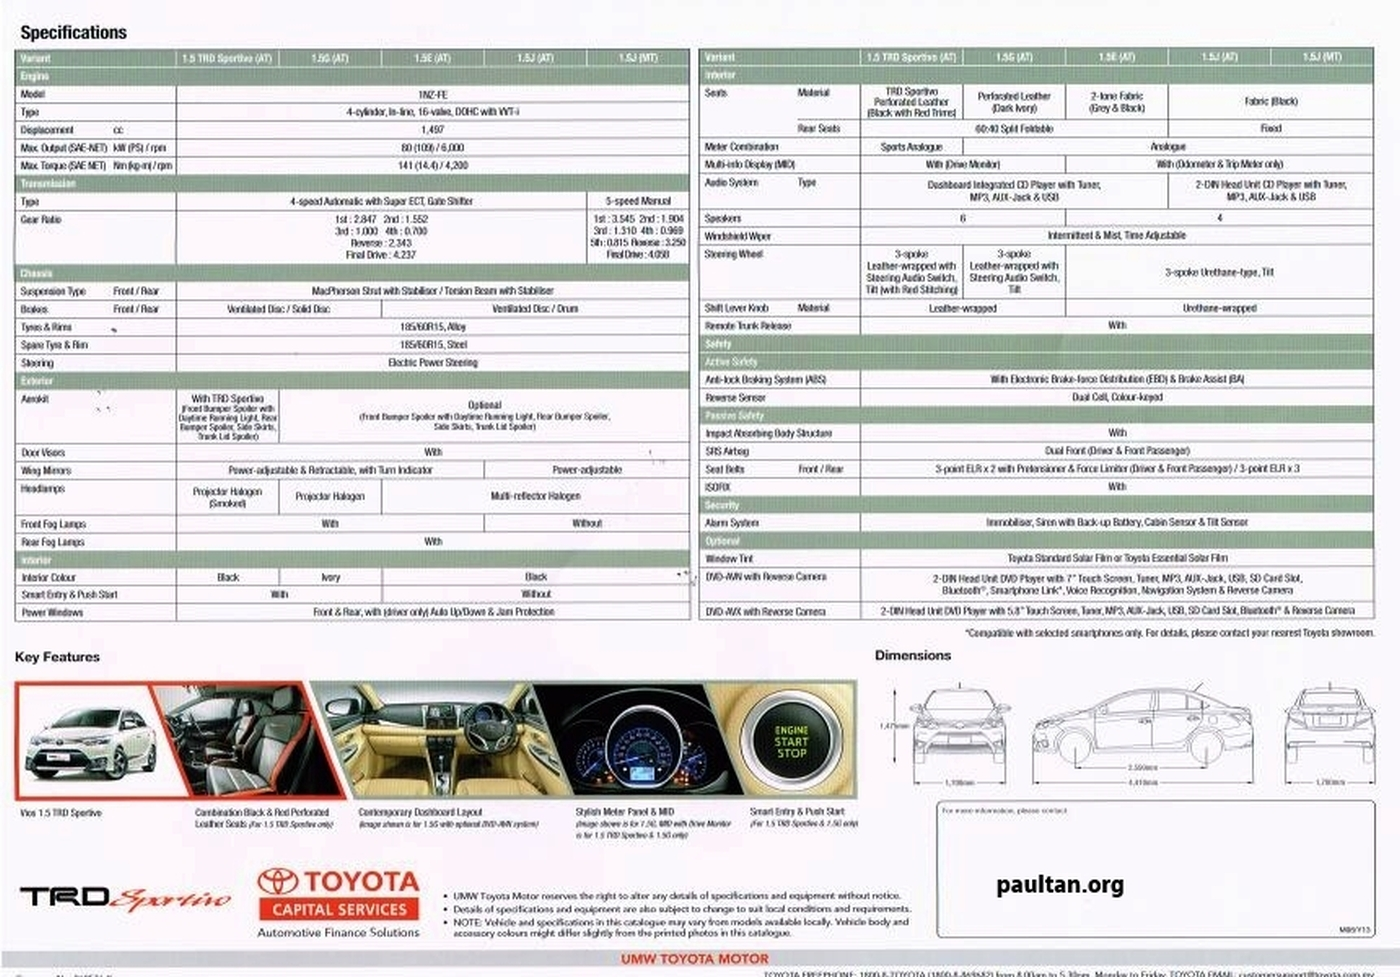 2013 Toyota Vios Specs List Pops Up On Oto My Image 191626